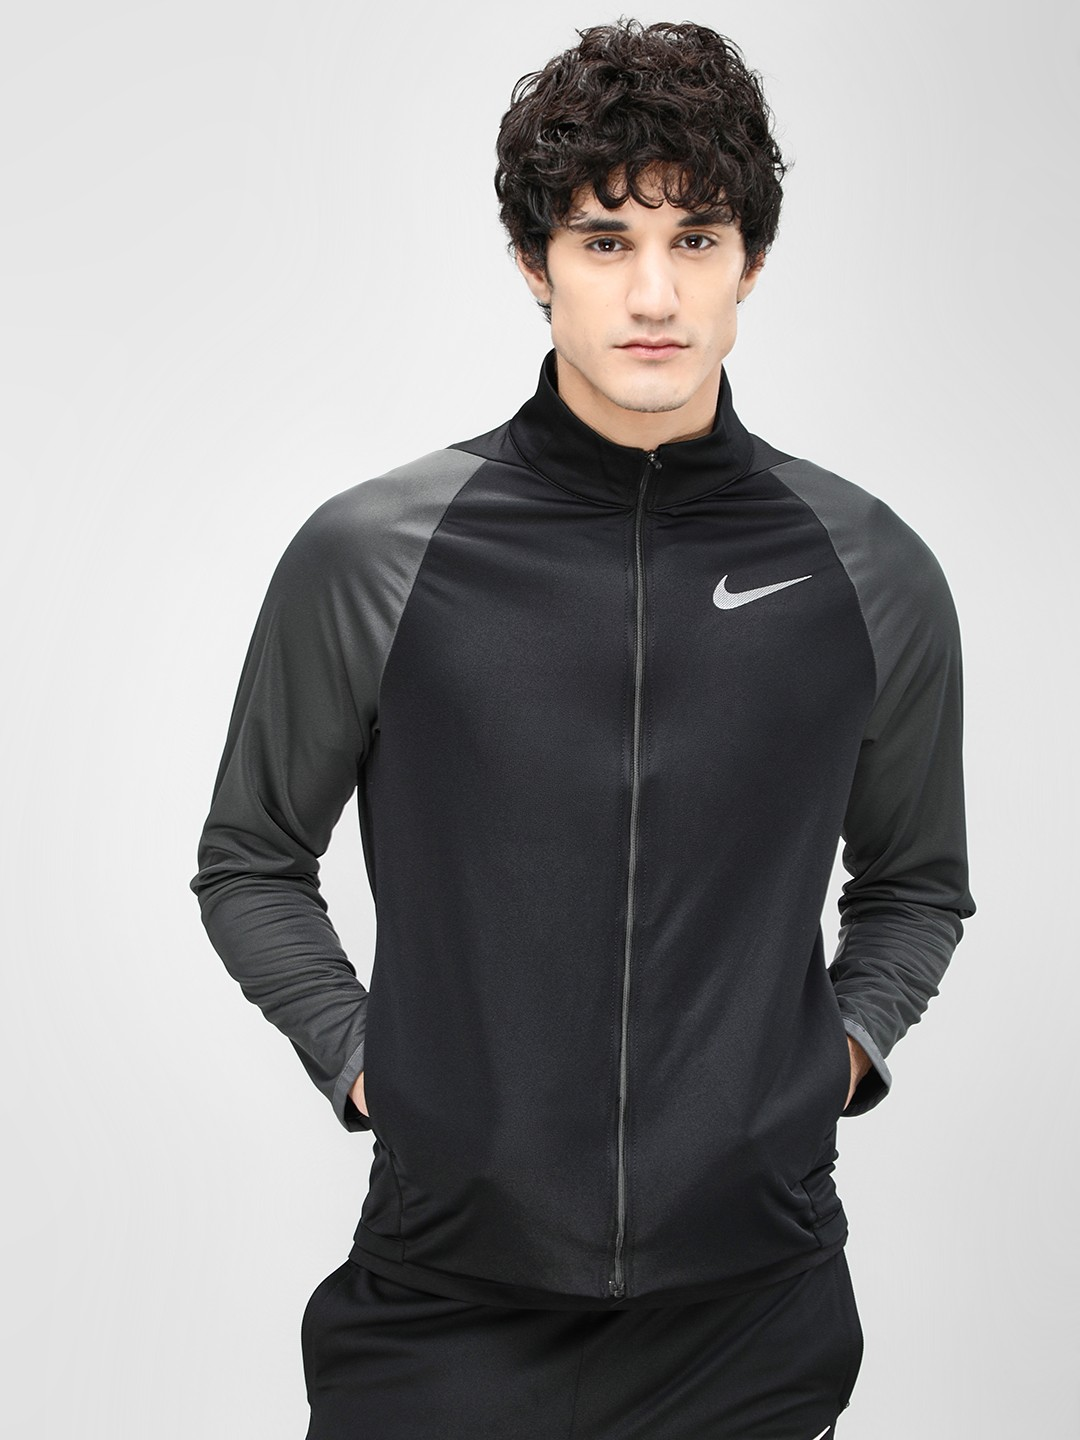 Nike Black Epic Knit Training Jacket 1